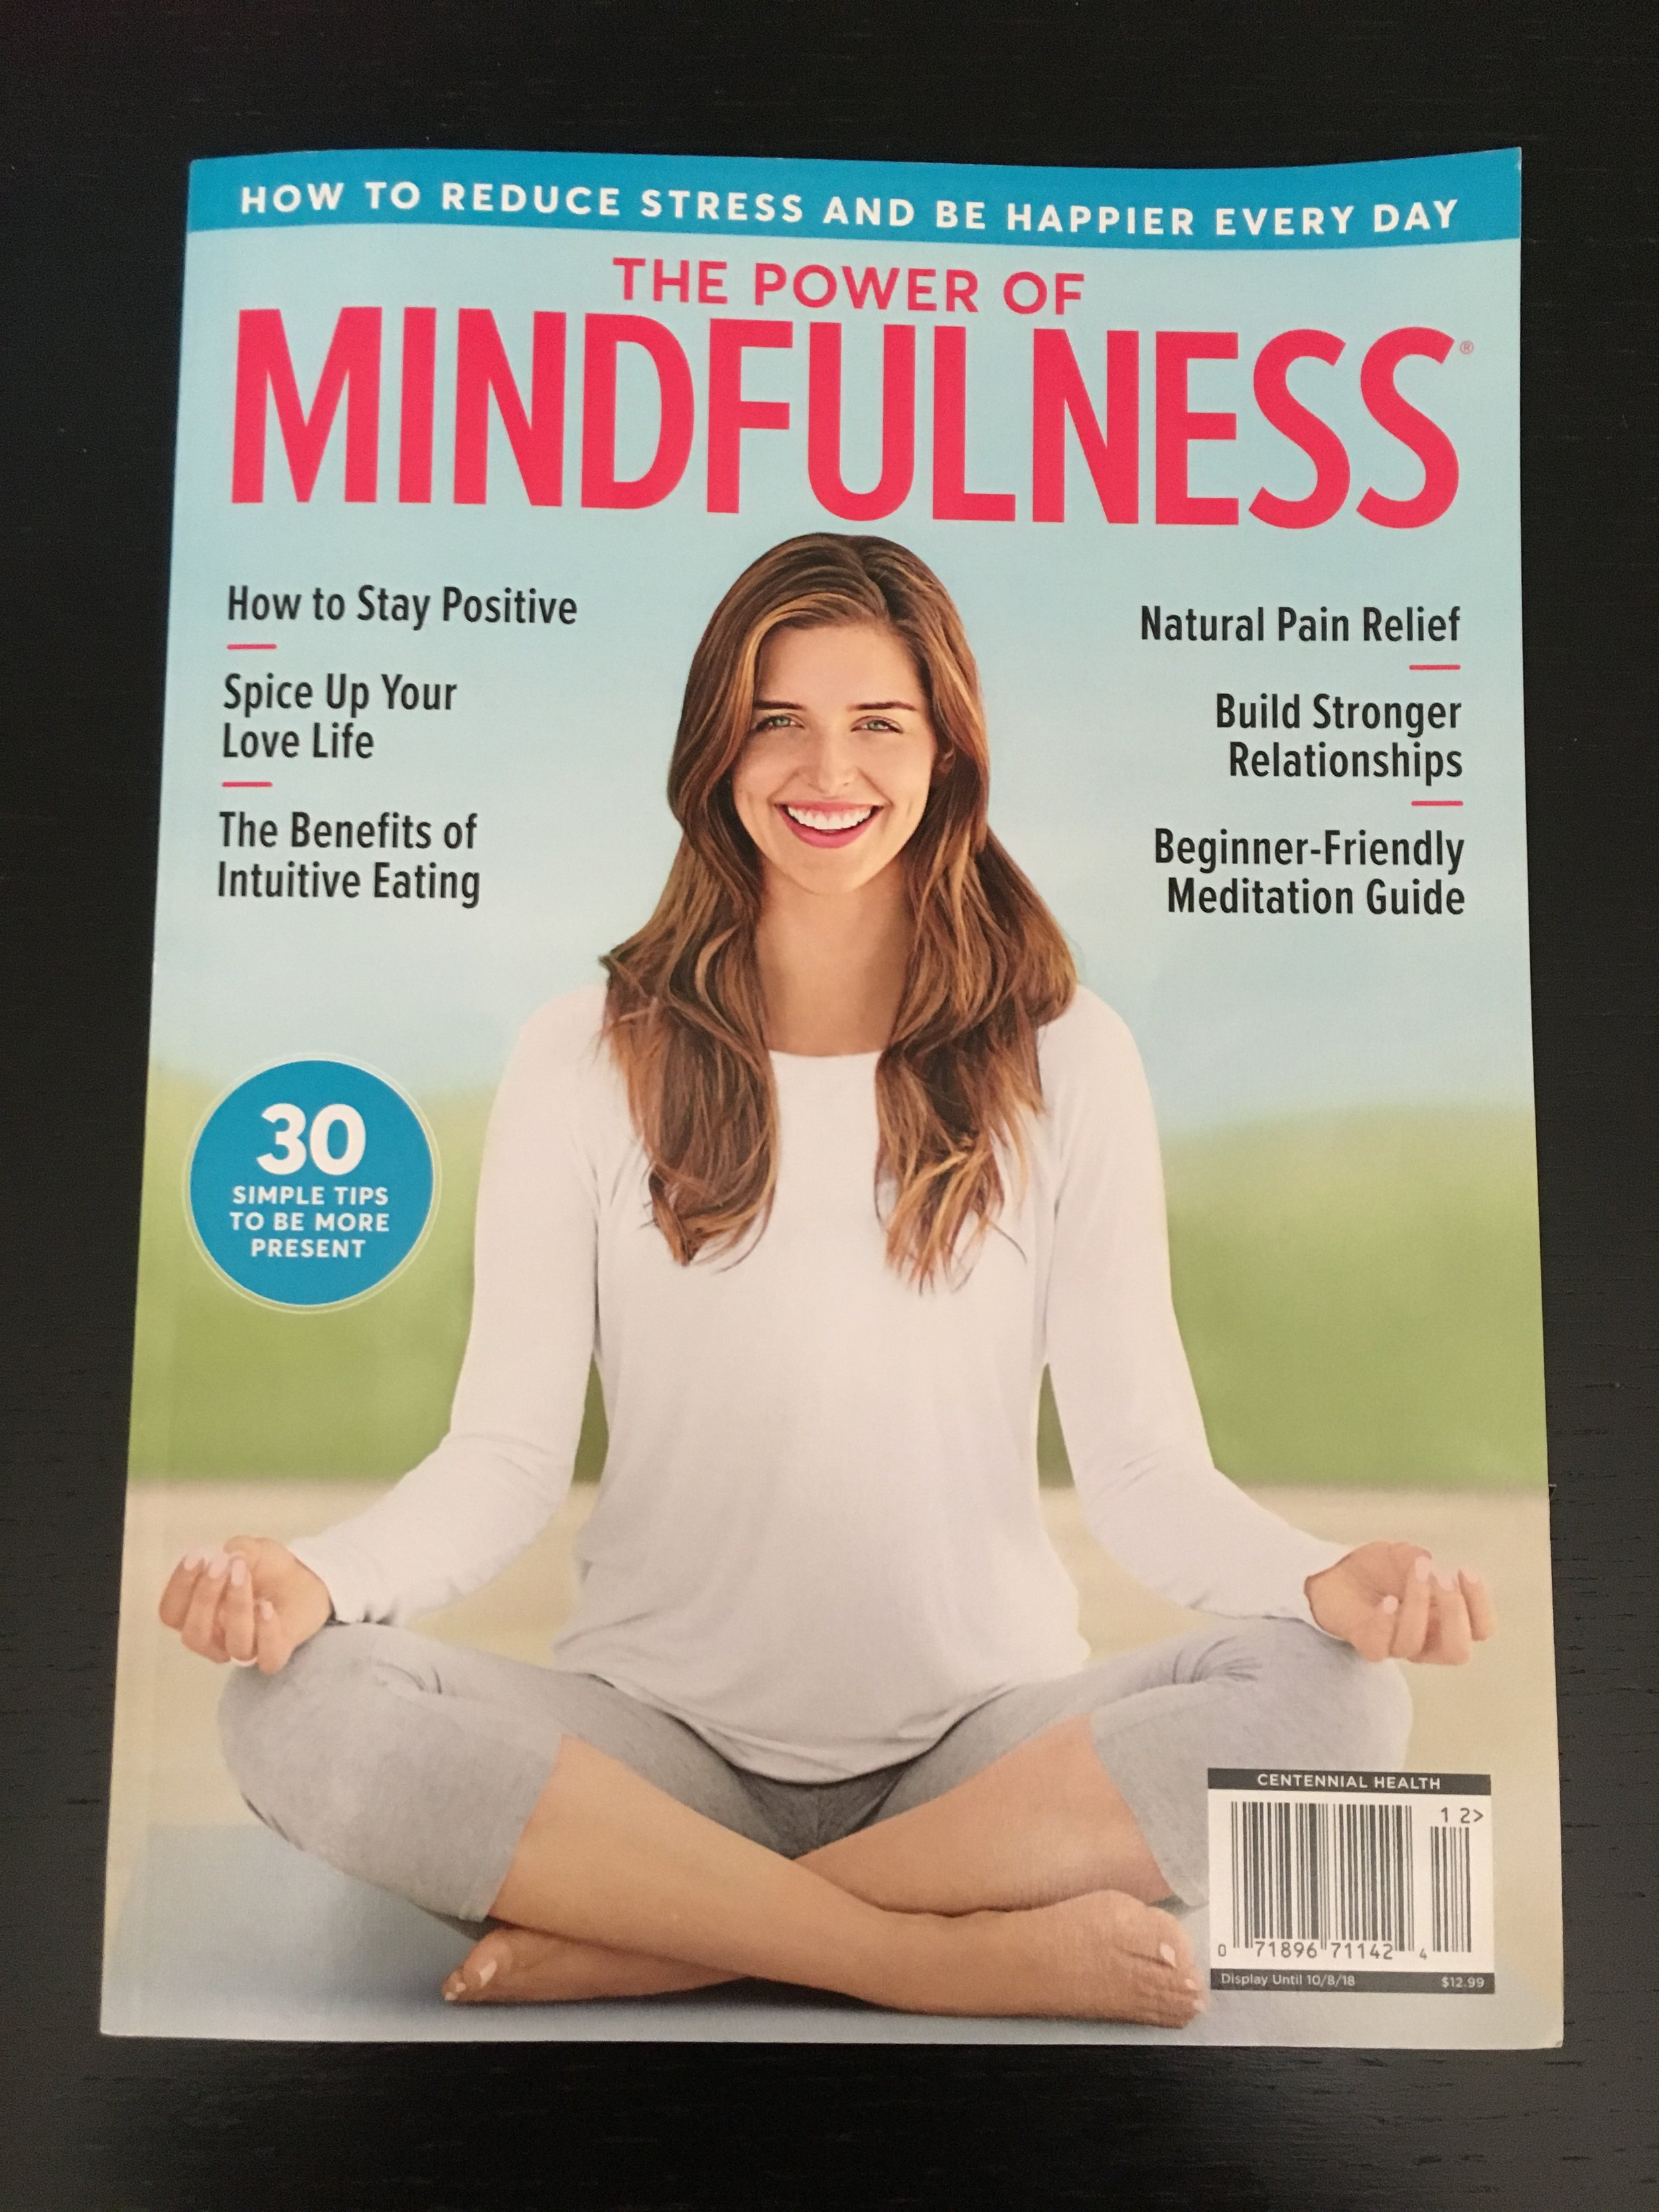 THE POWER OF MINDFULNESS MAGAZINE ARTICLE - Published October 2018